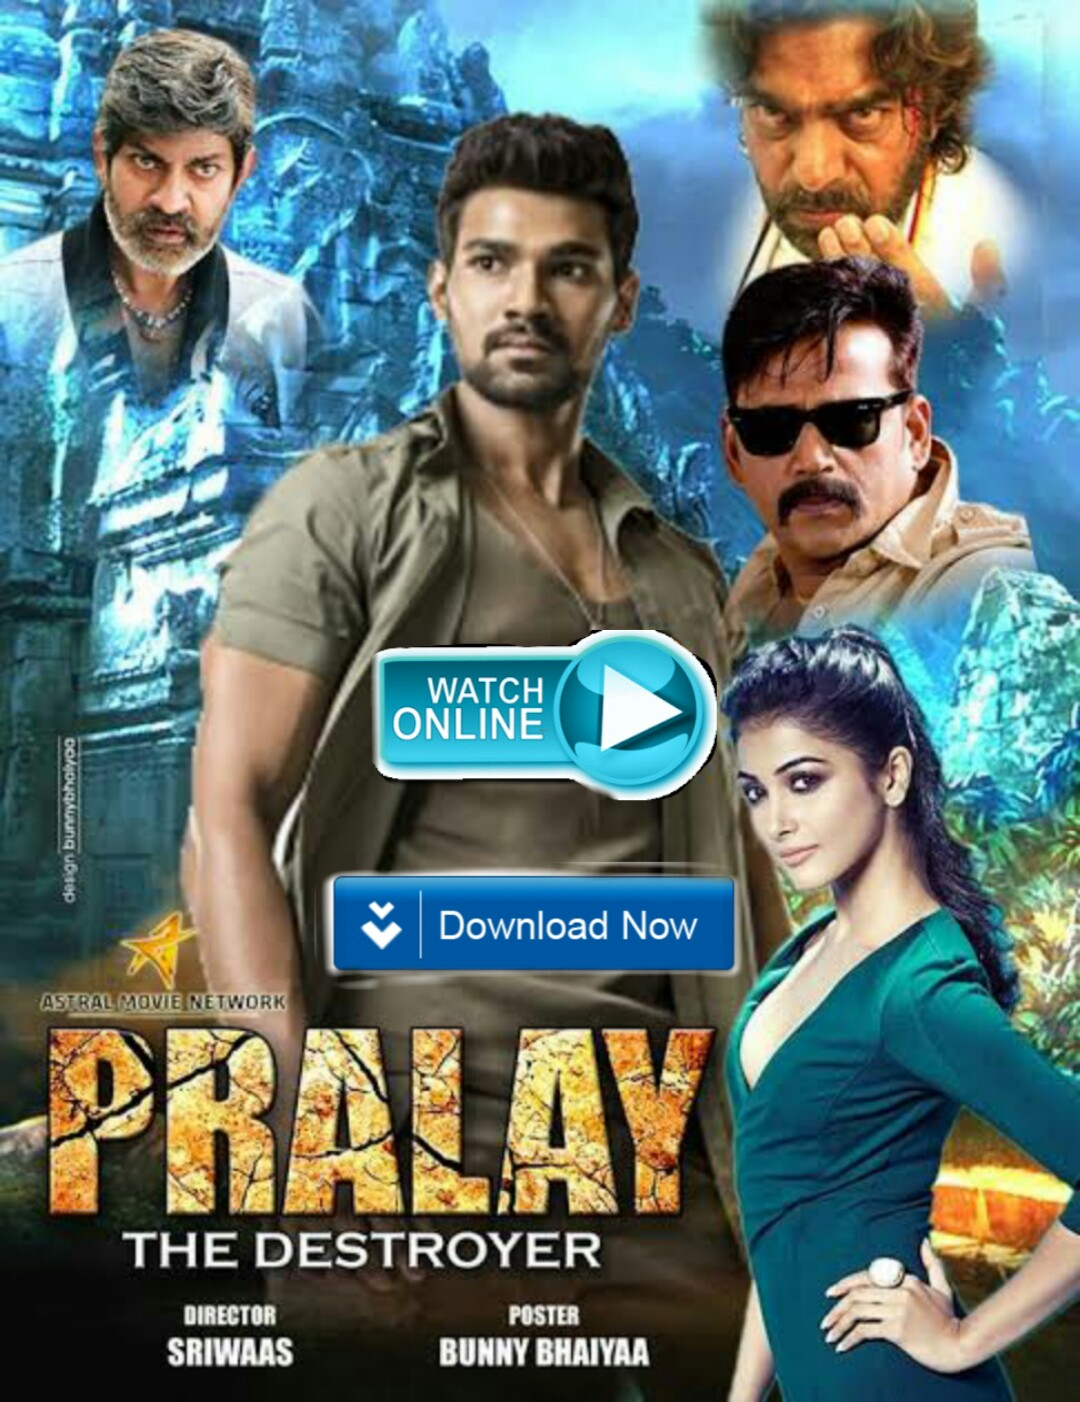 Pralay The Destroyer Hindi Dubbed Full Movie Download filmywap, filmyzilla